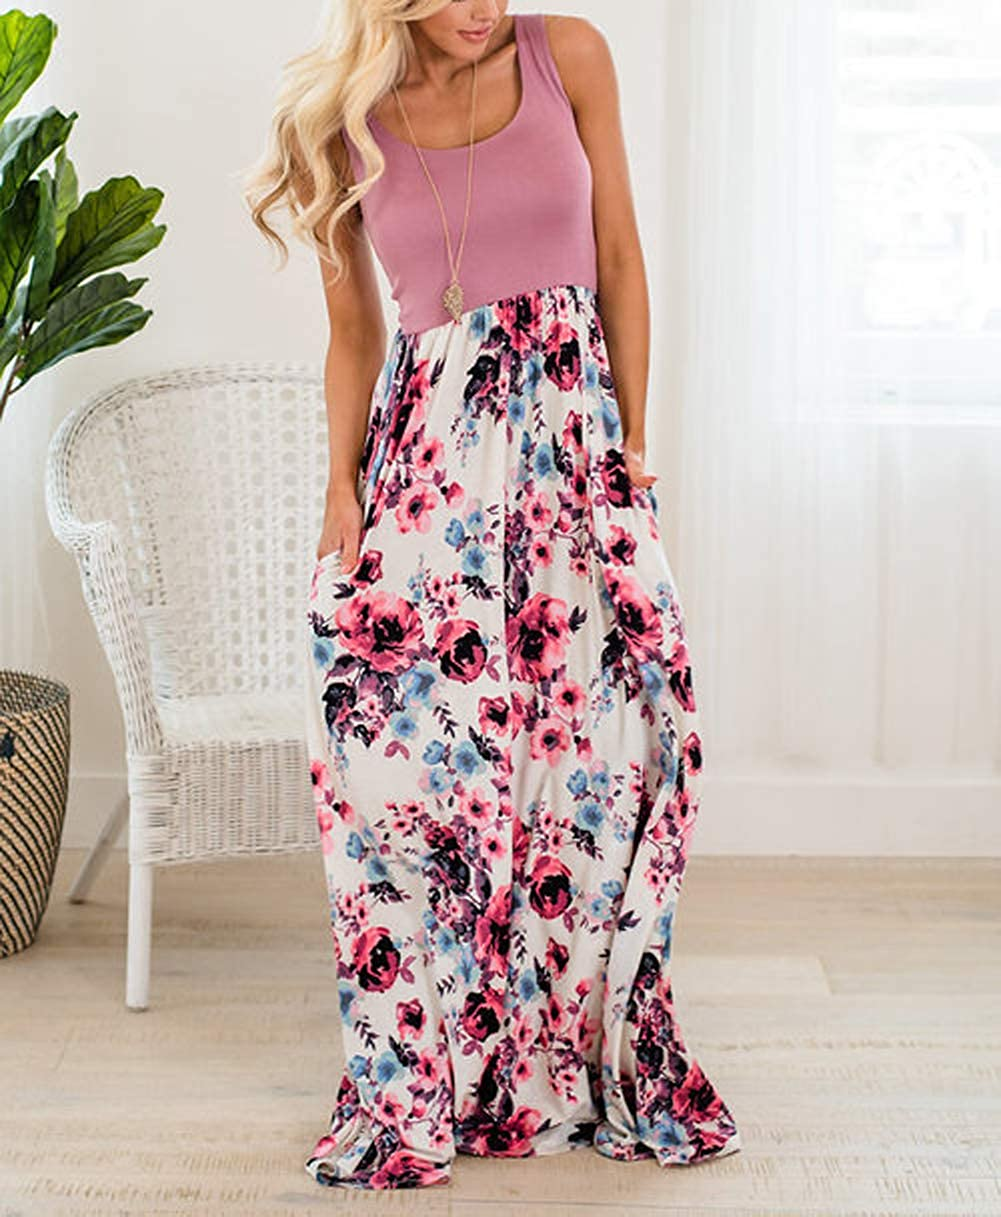 Astellarie Mother and Daughter Matching Clothes,Floral Printed Family Beach Maxi Dress with Pockets for Easter Mothers Day